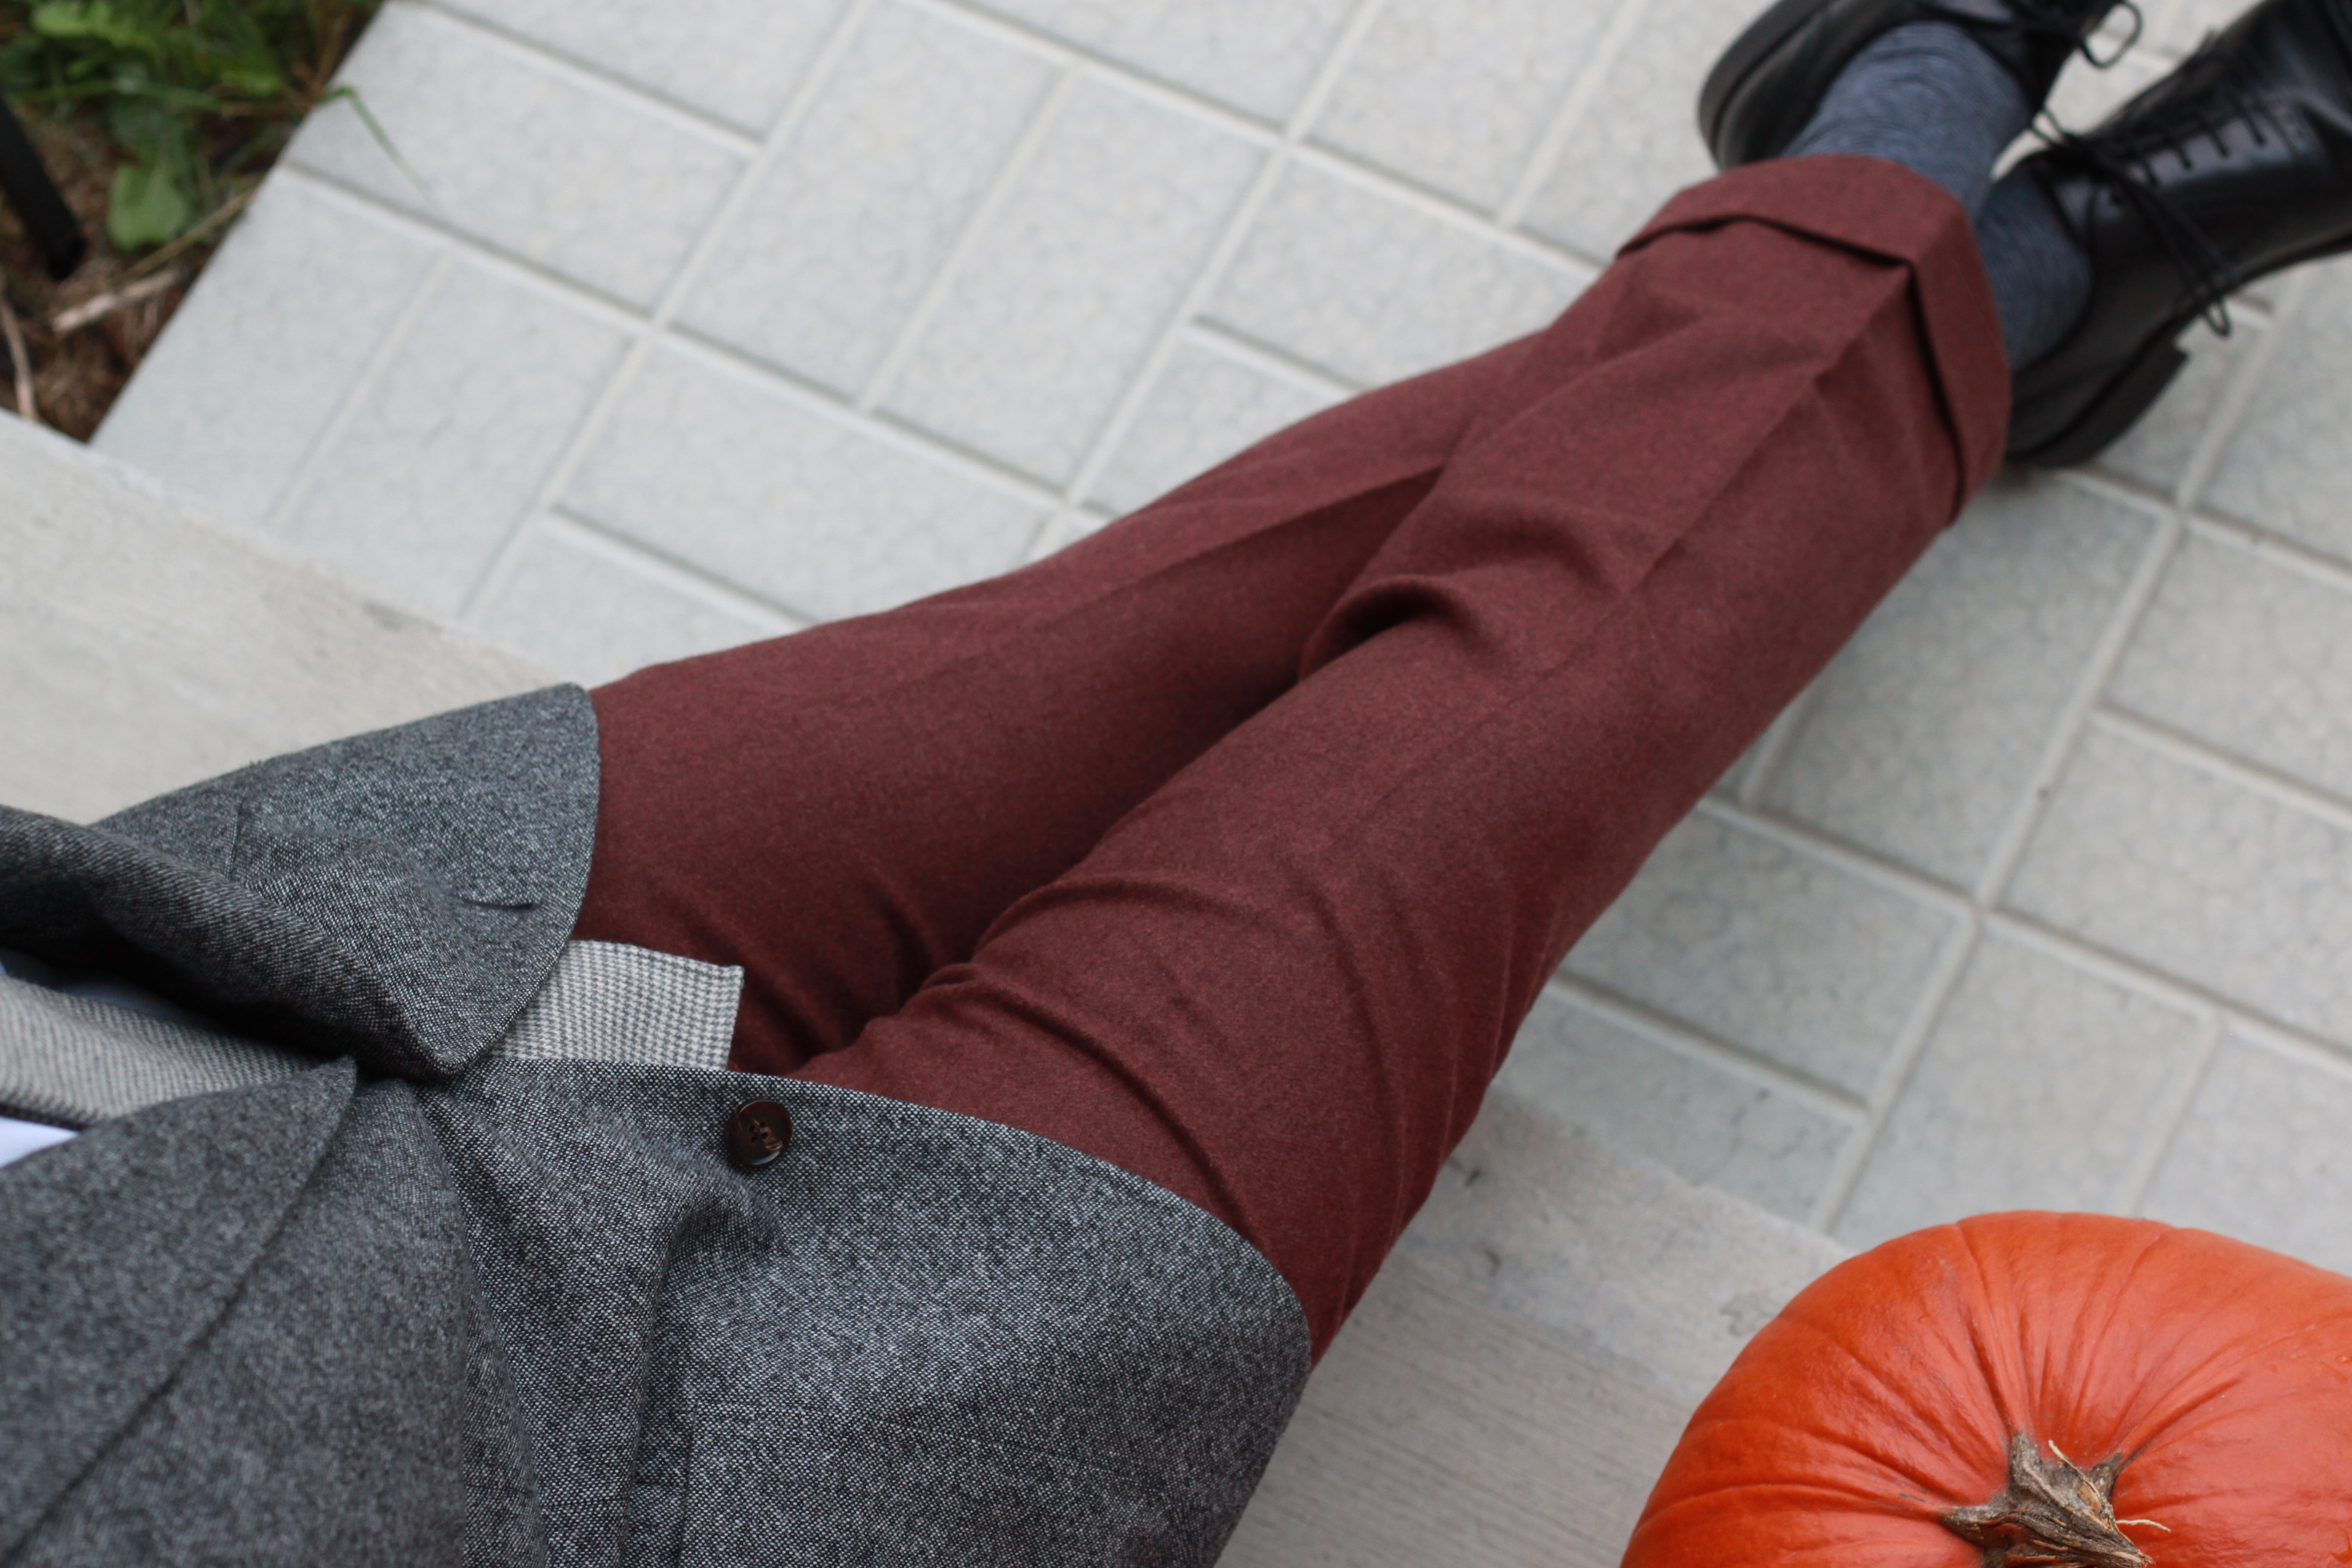 burgundy flannel trousers, cuffs, trousers, menswear, outfit ideas